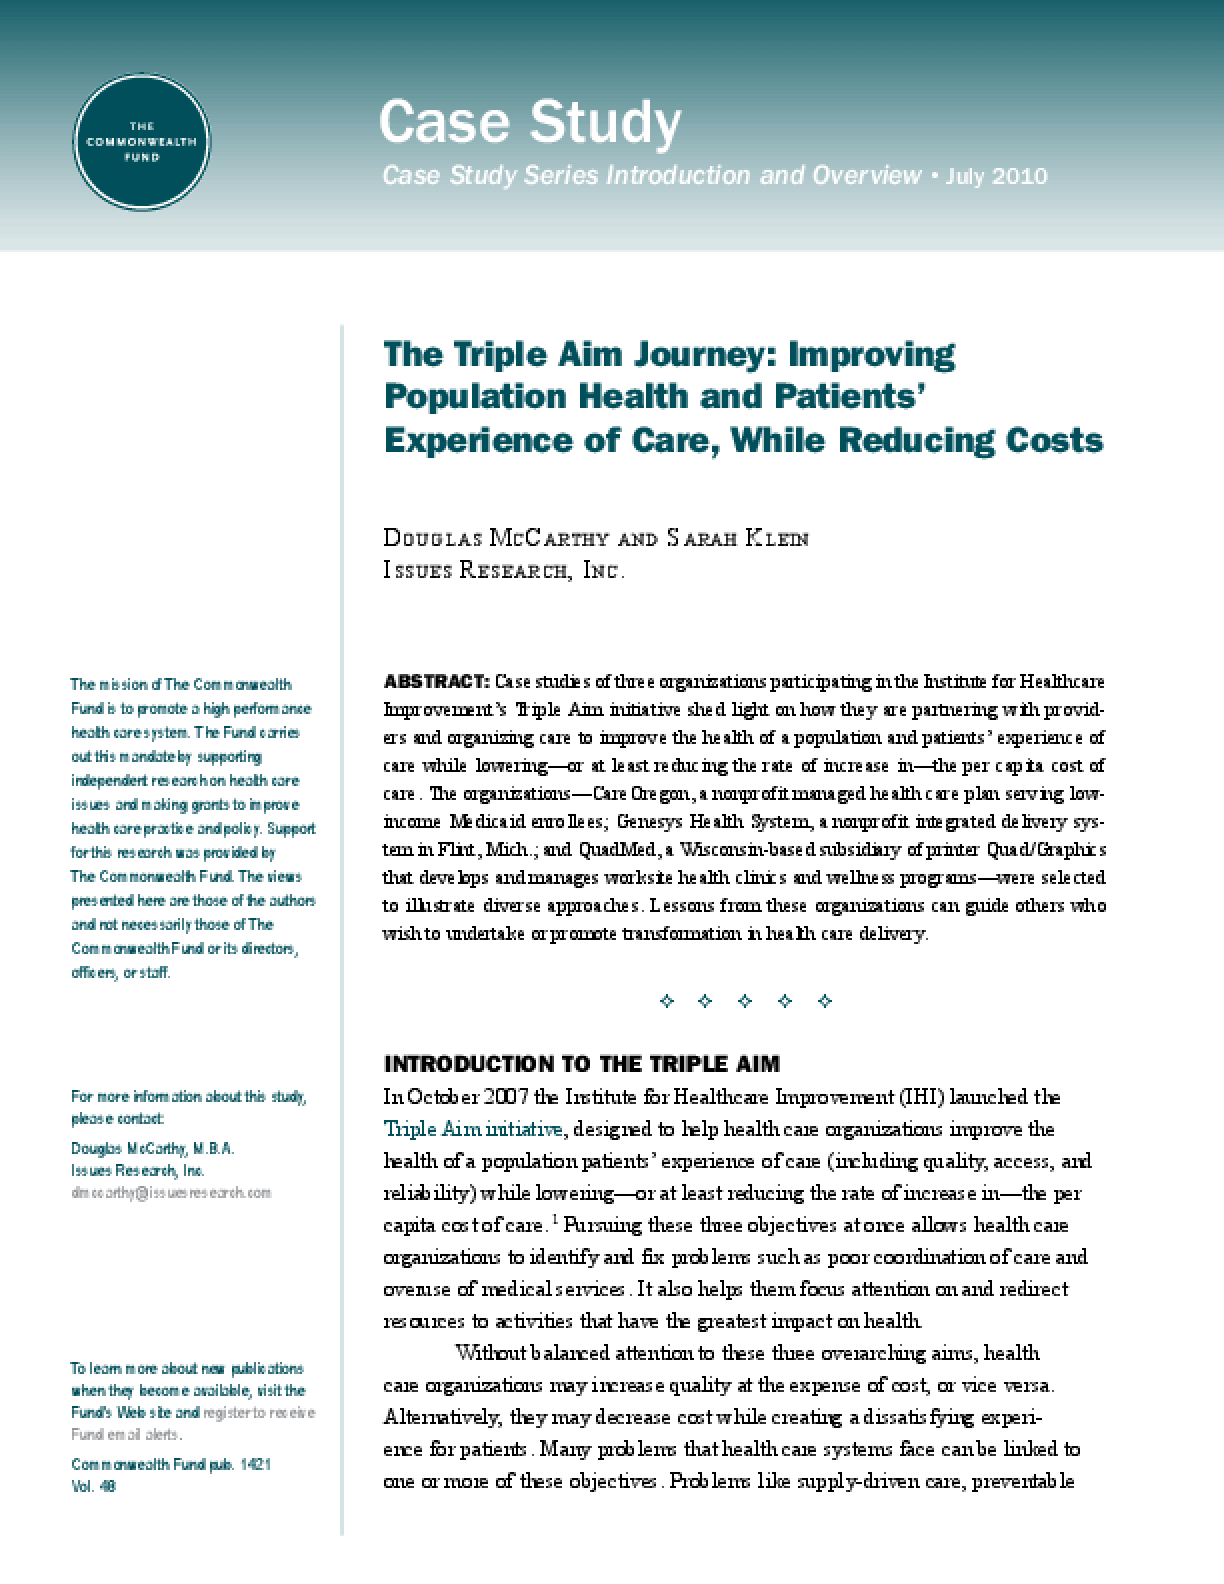 The Triple Aim Journey: Improving Population Health and Patients' Experience of Care, While Reducing Costs